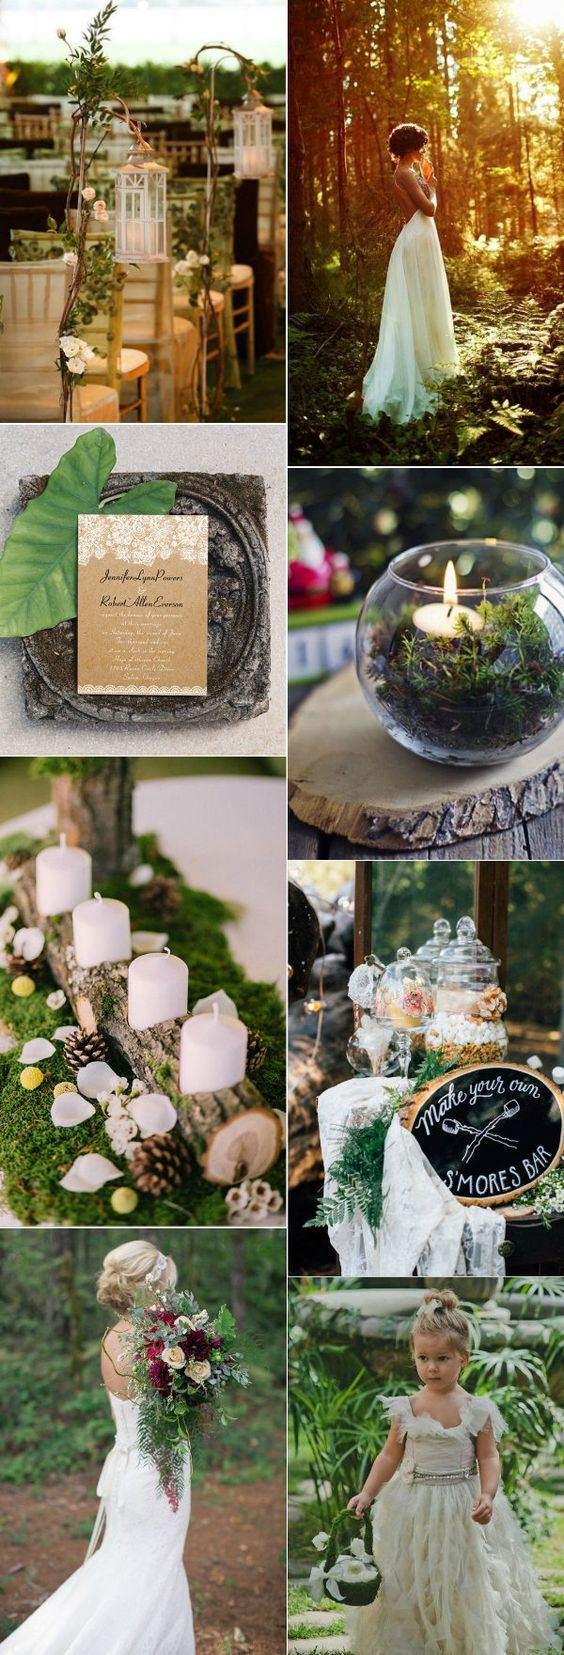 dreamy and enchanted woodland inspired wedding ideas